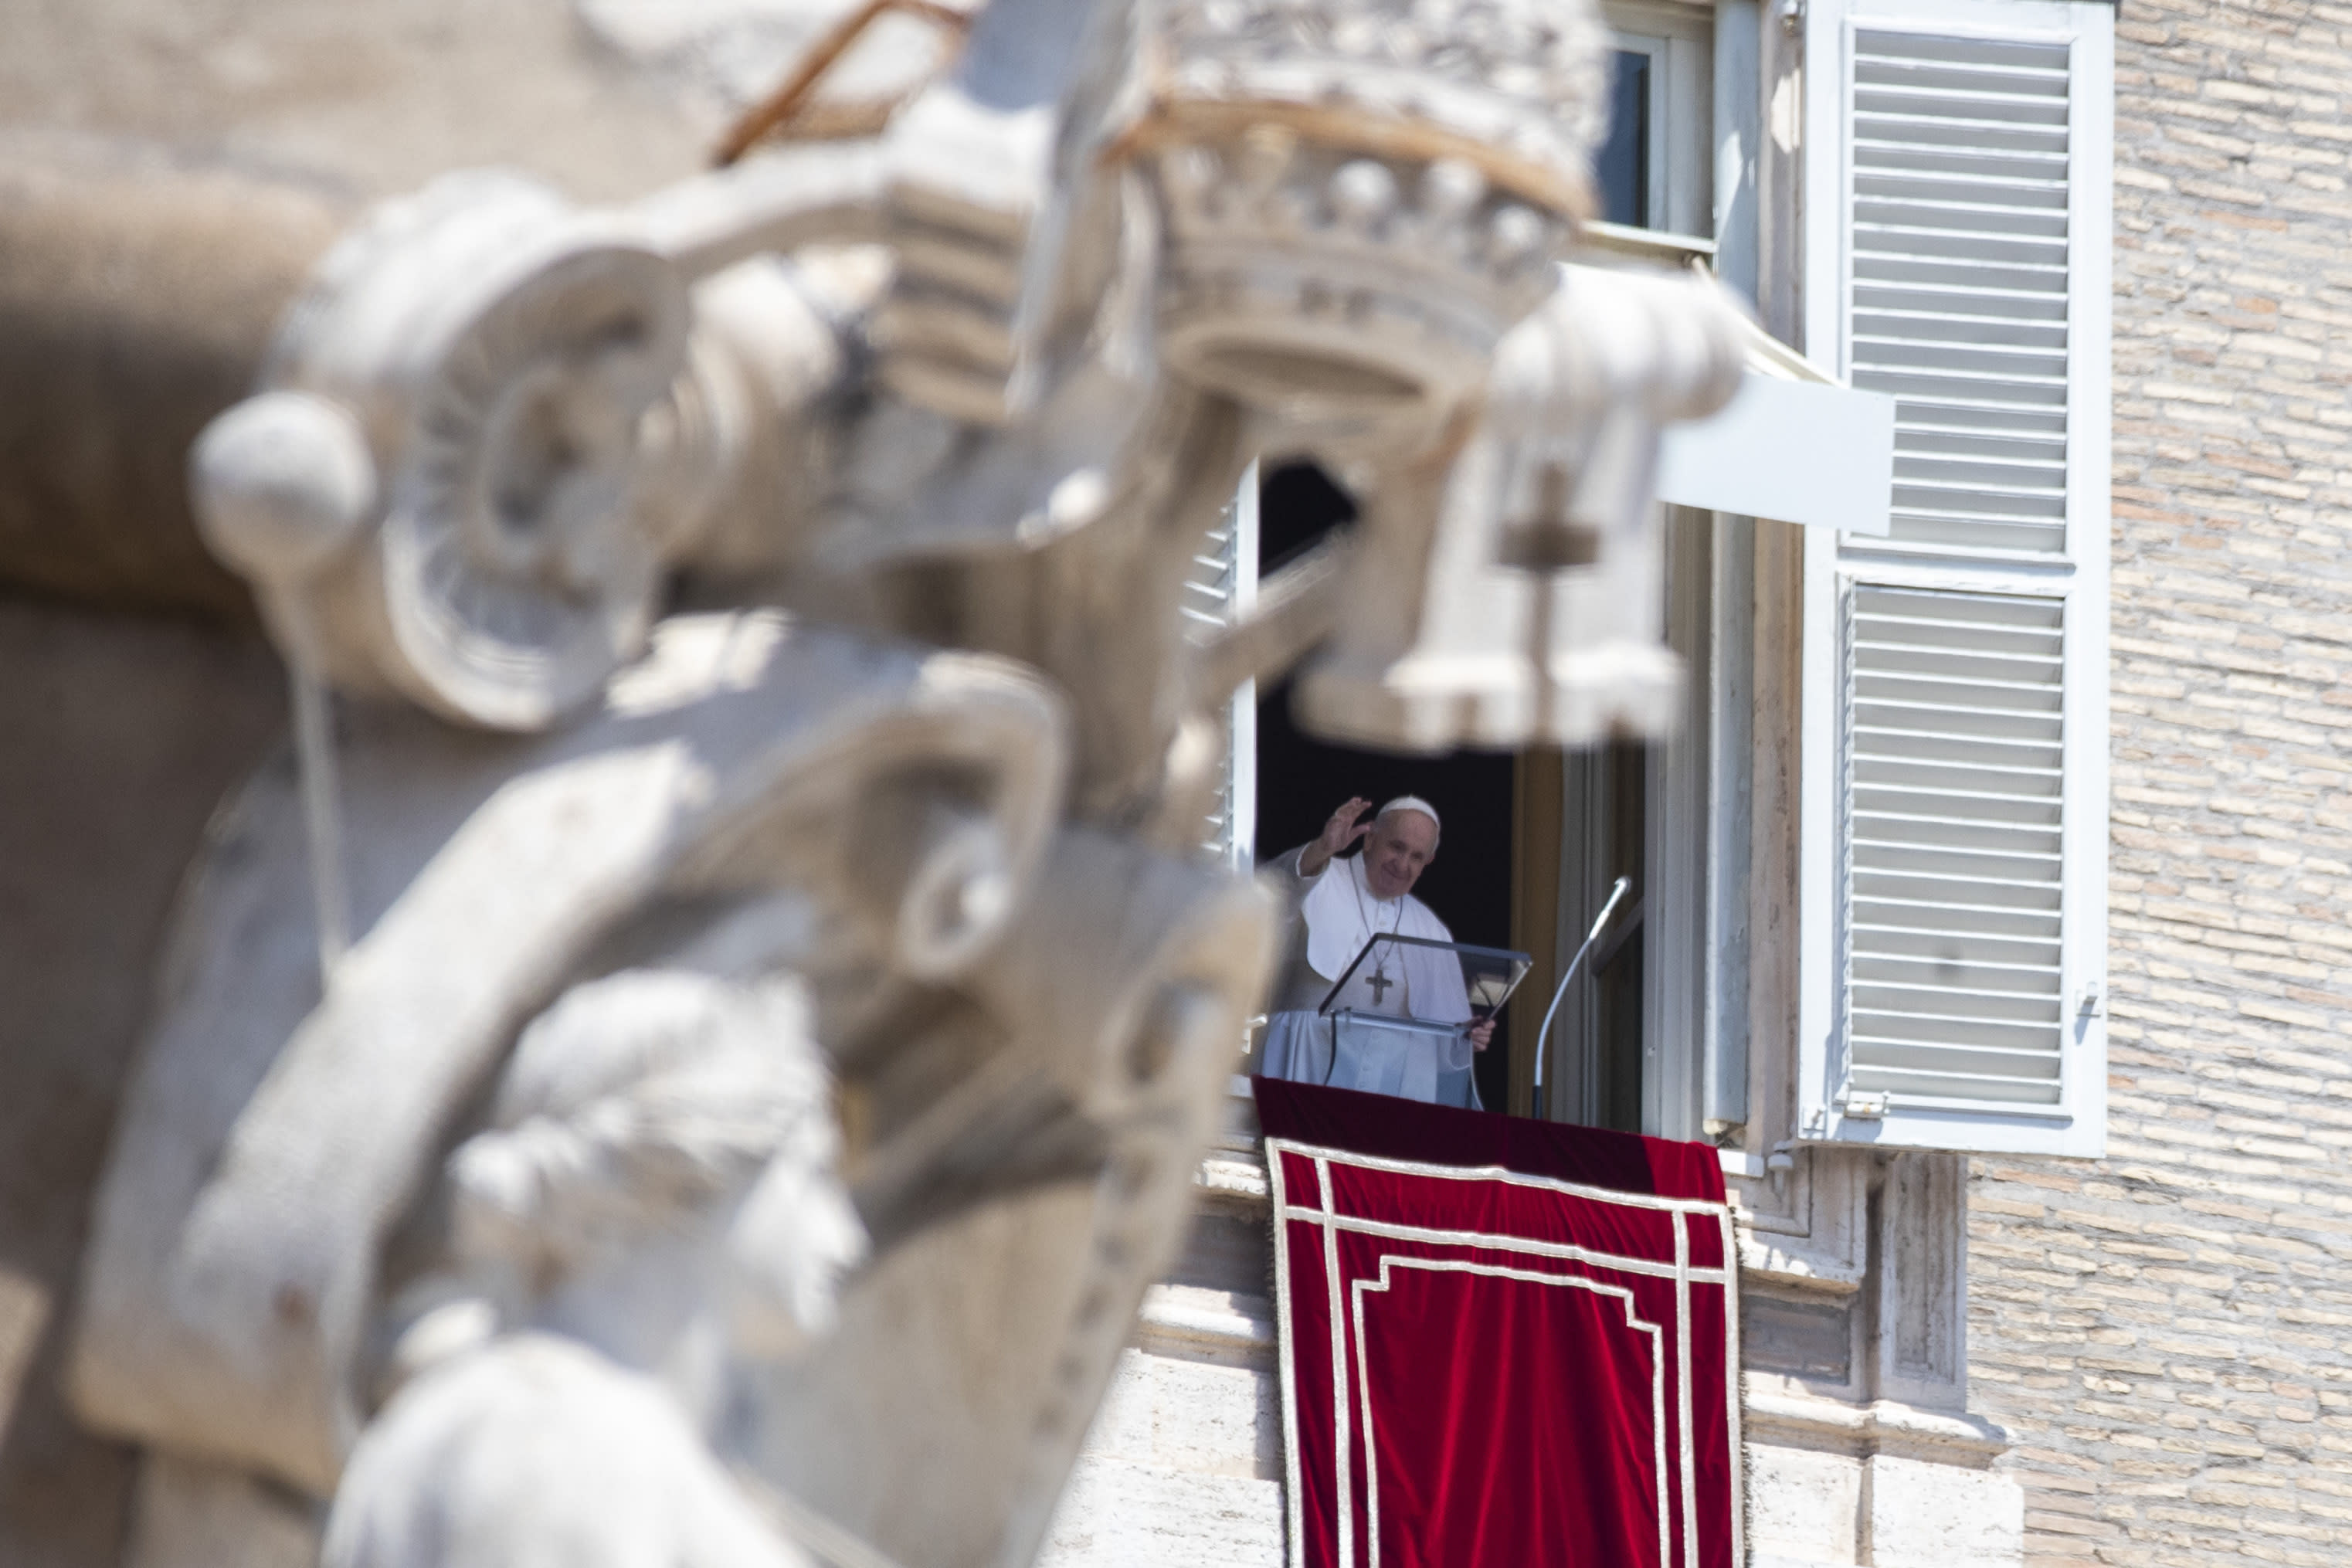 Pope Francis arrives for the Angelus prayer he delivers from the window of his studio overlooking St. Peter's Square at the Vatican, Sunday, July 12, 2020. (AP Photo/Alessandra Tarantino)